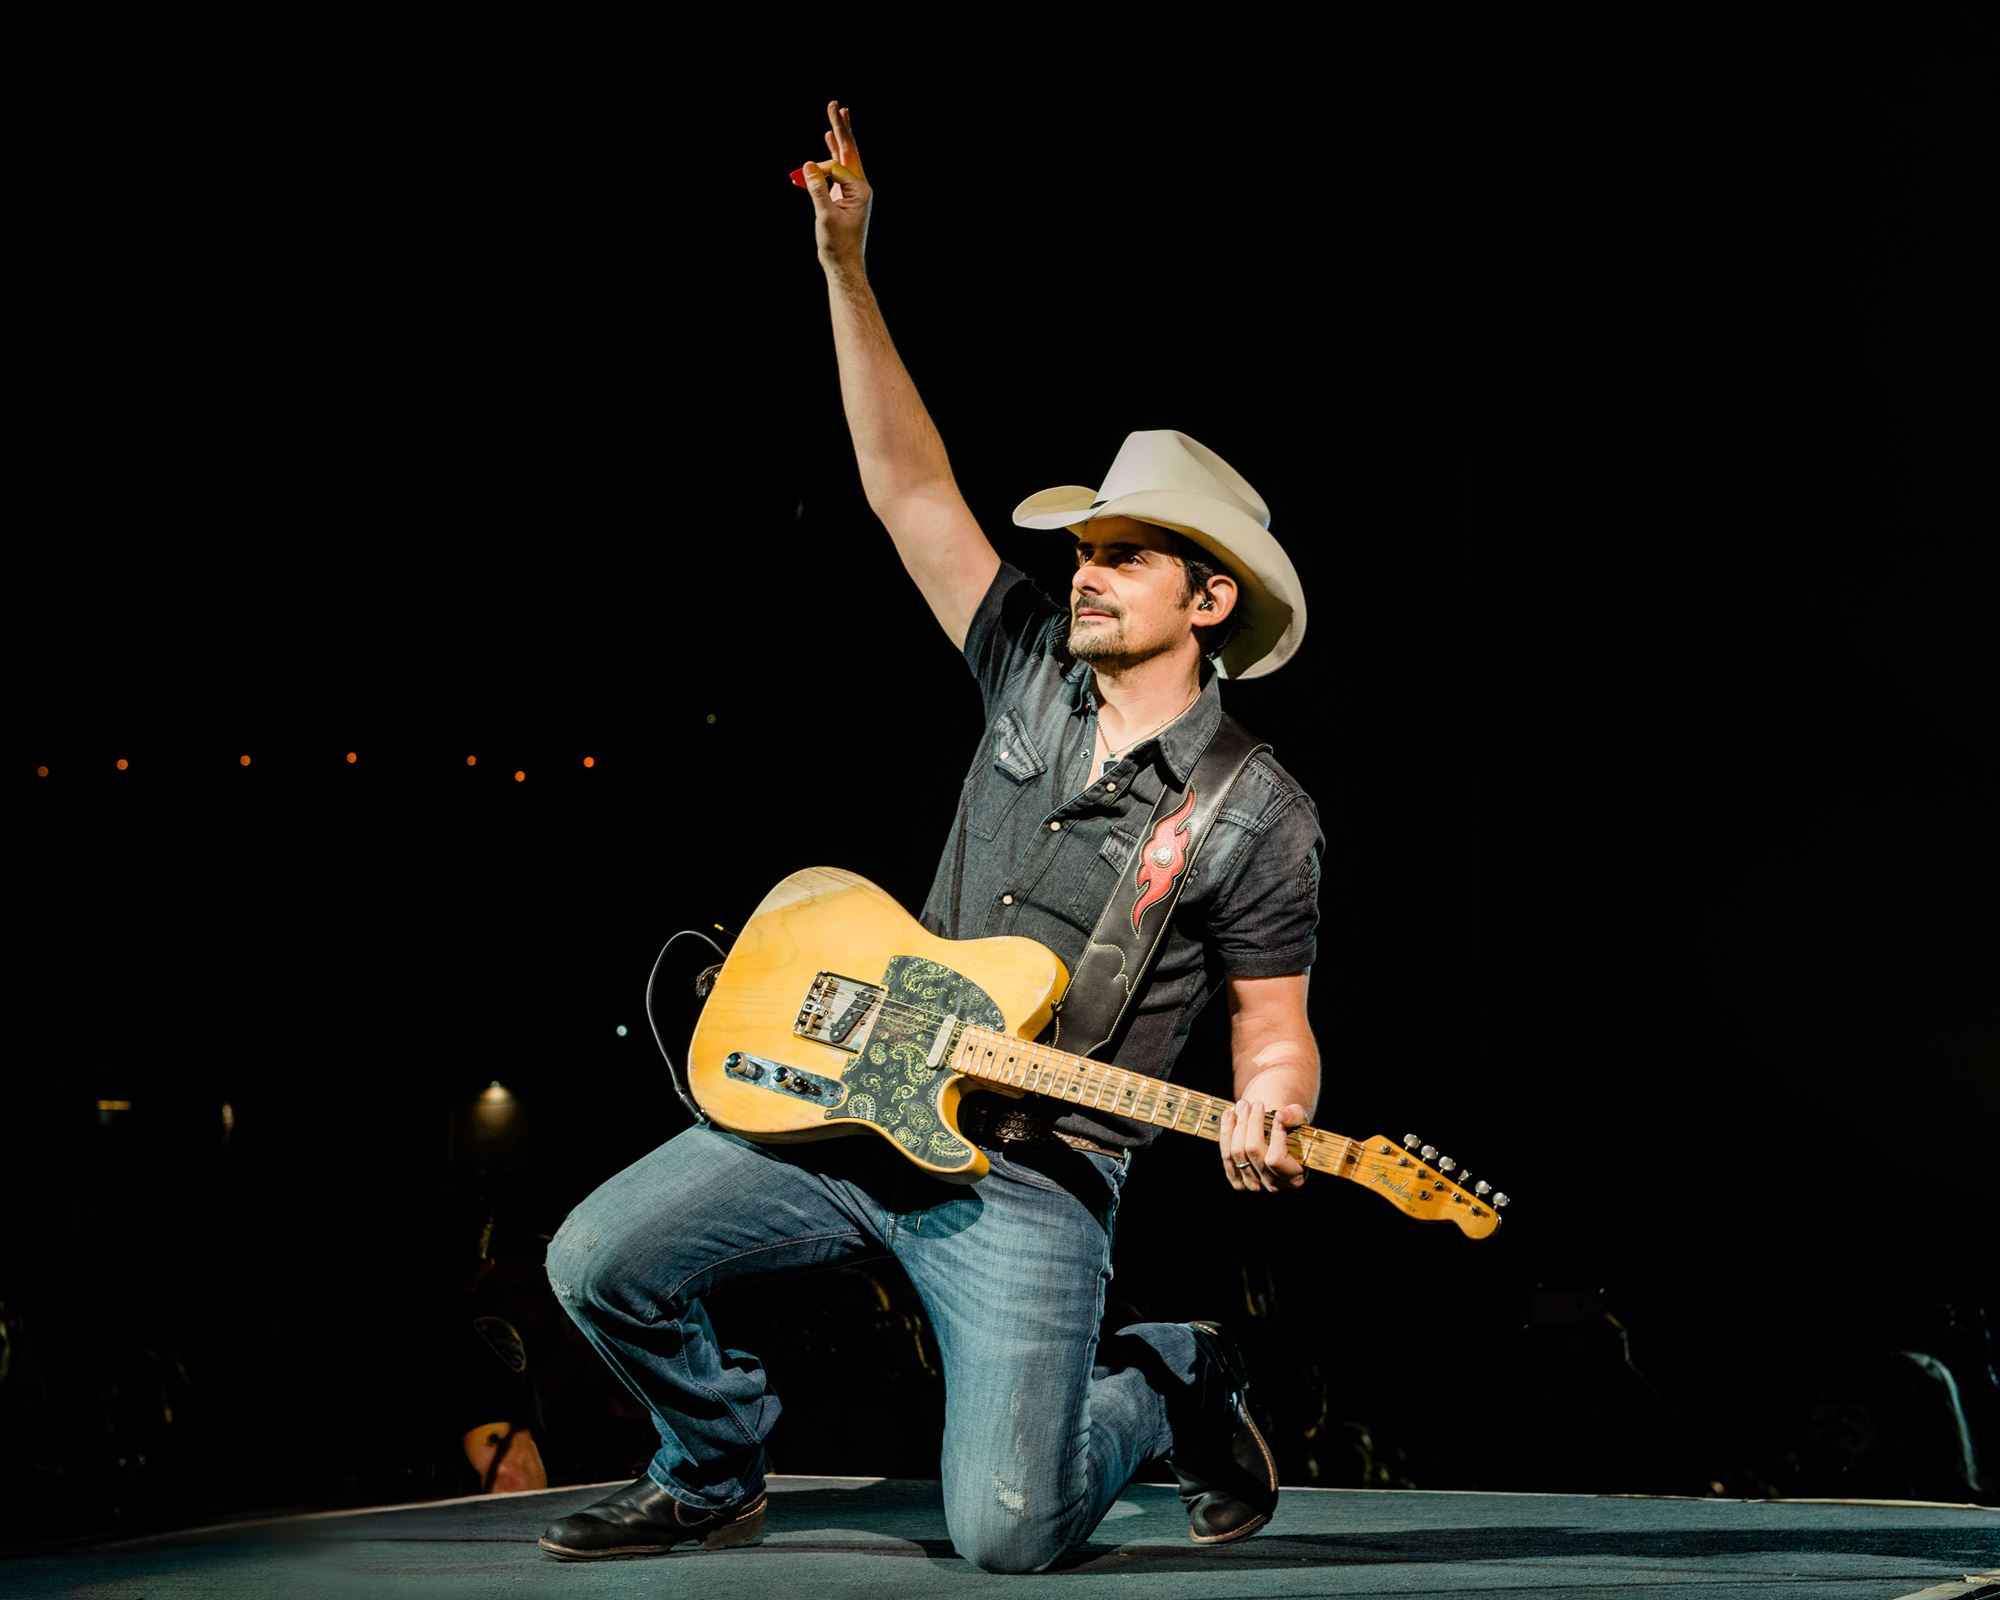 PRCA Rodeo w/ Brad Paisley <br>Tuesday, Feb. 15, 2022 at 7 PM